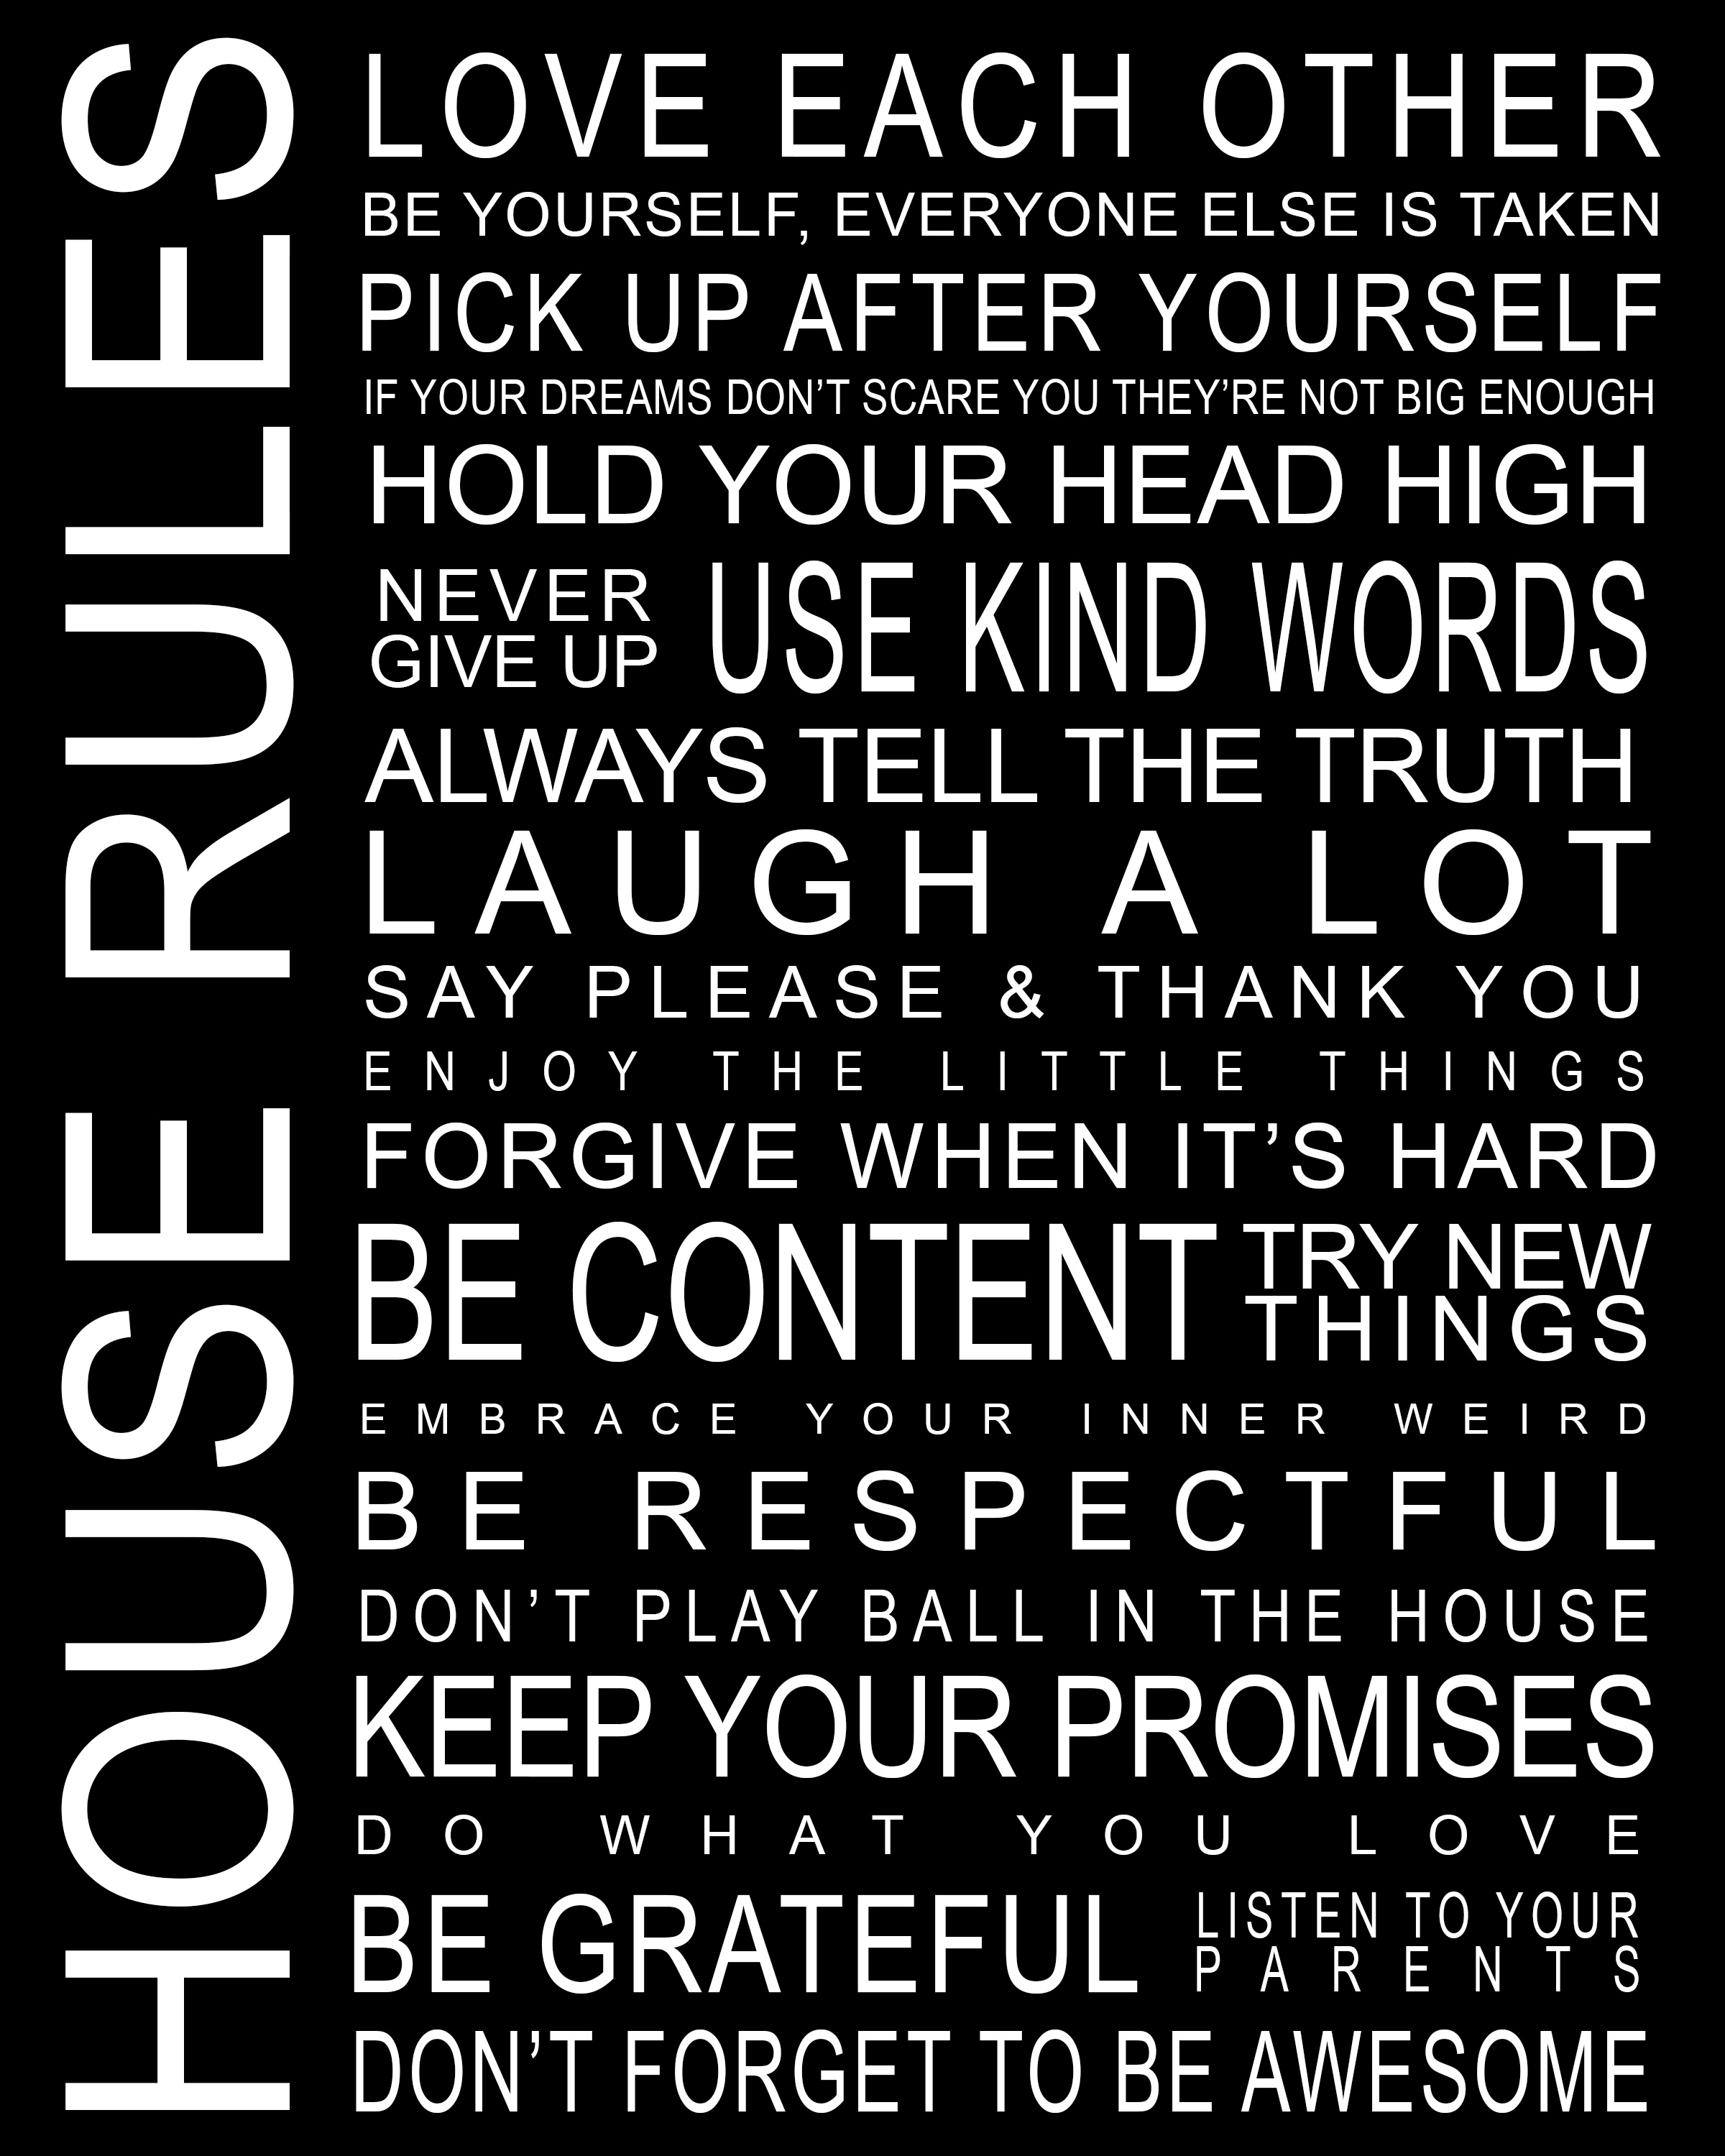 21 rules of this house posters for kids